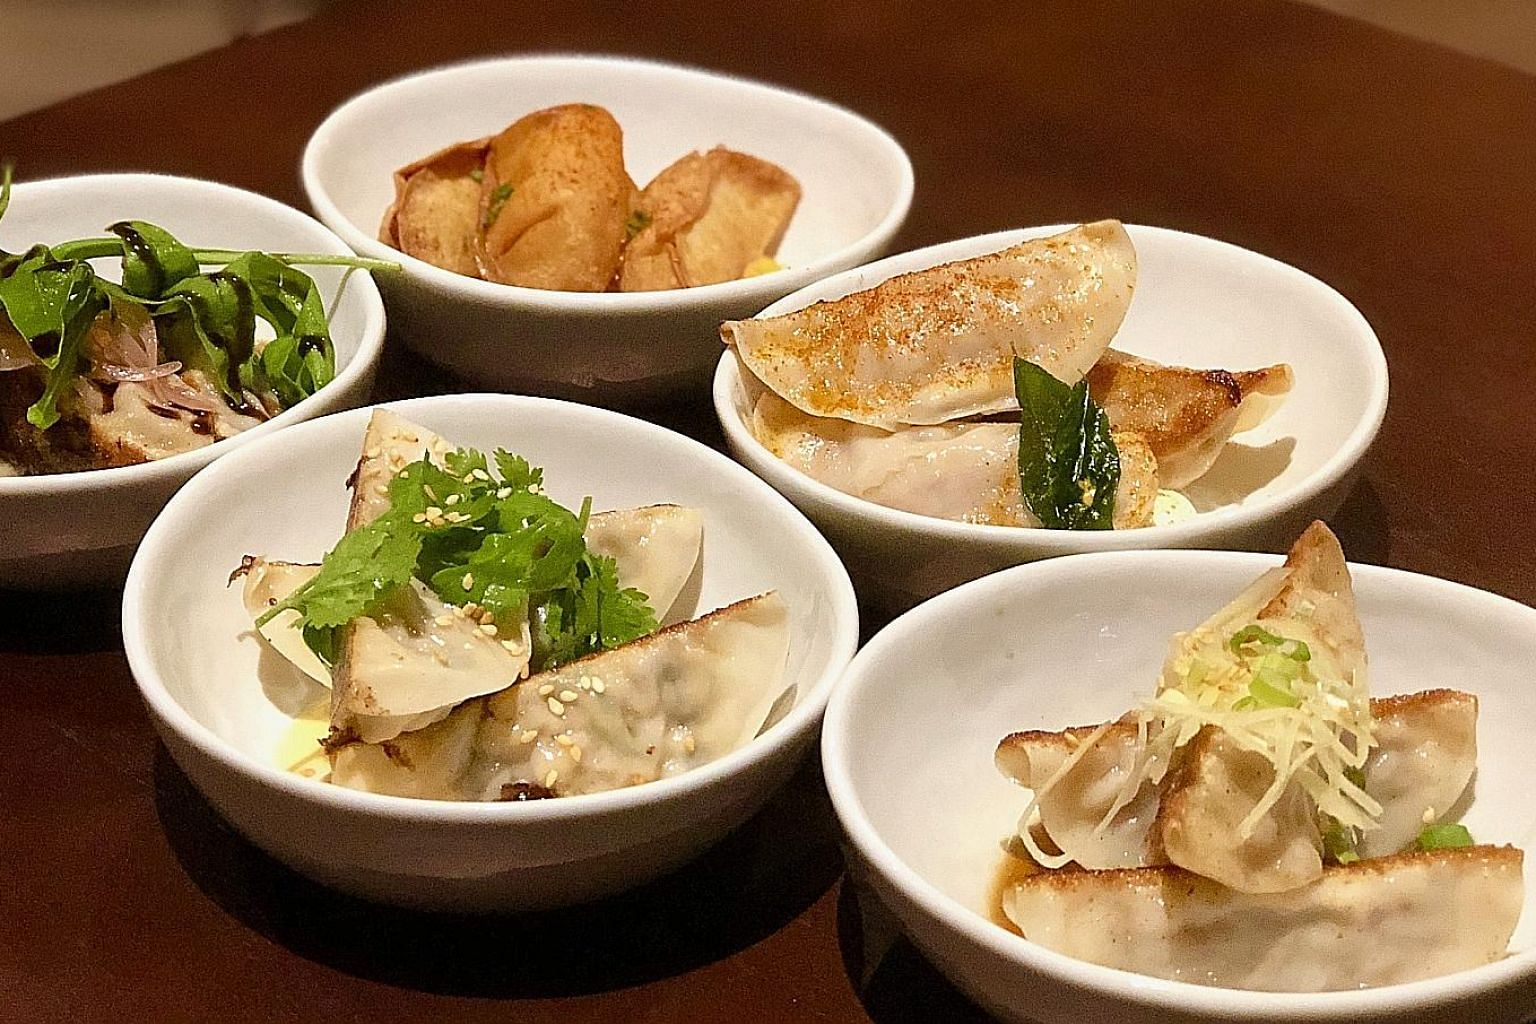 Assorted dumplings are priced at $7 or $8 a serving.